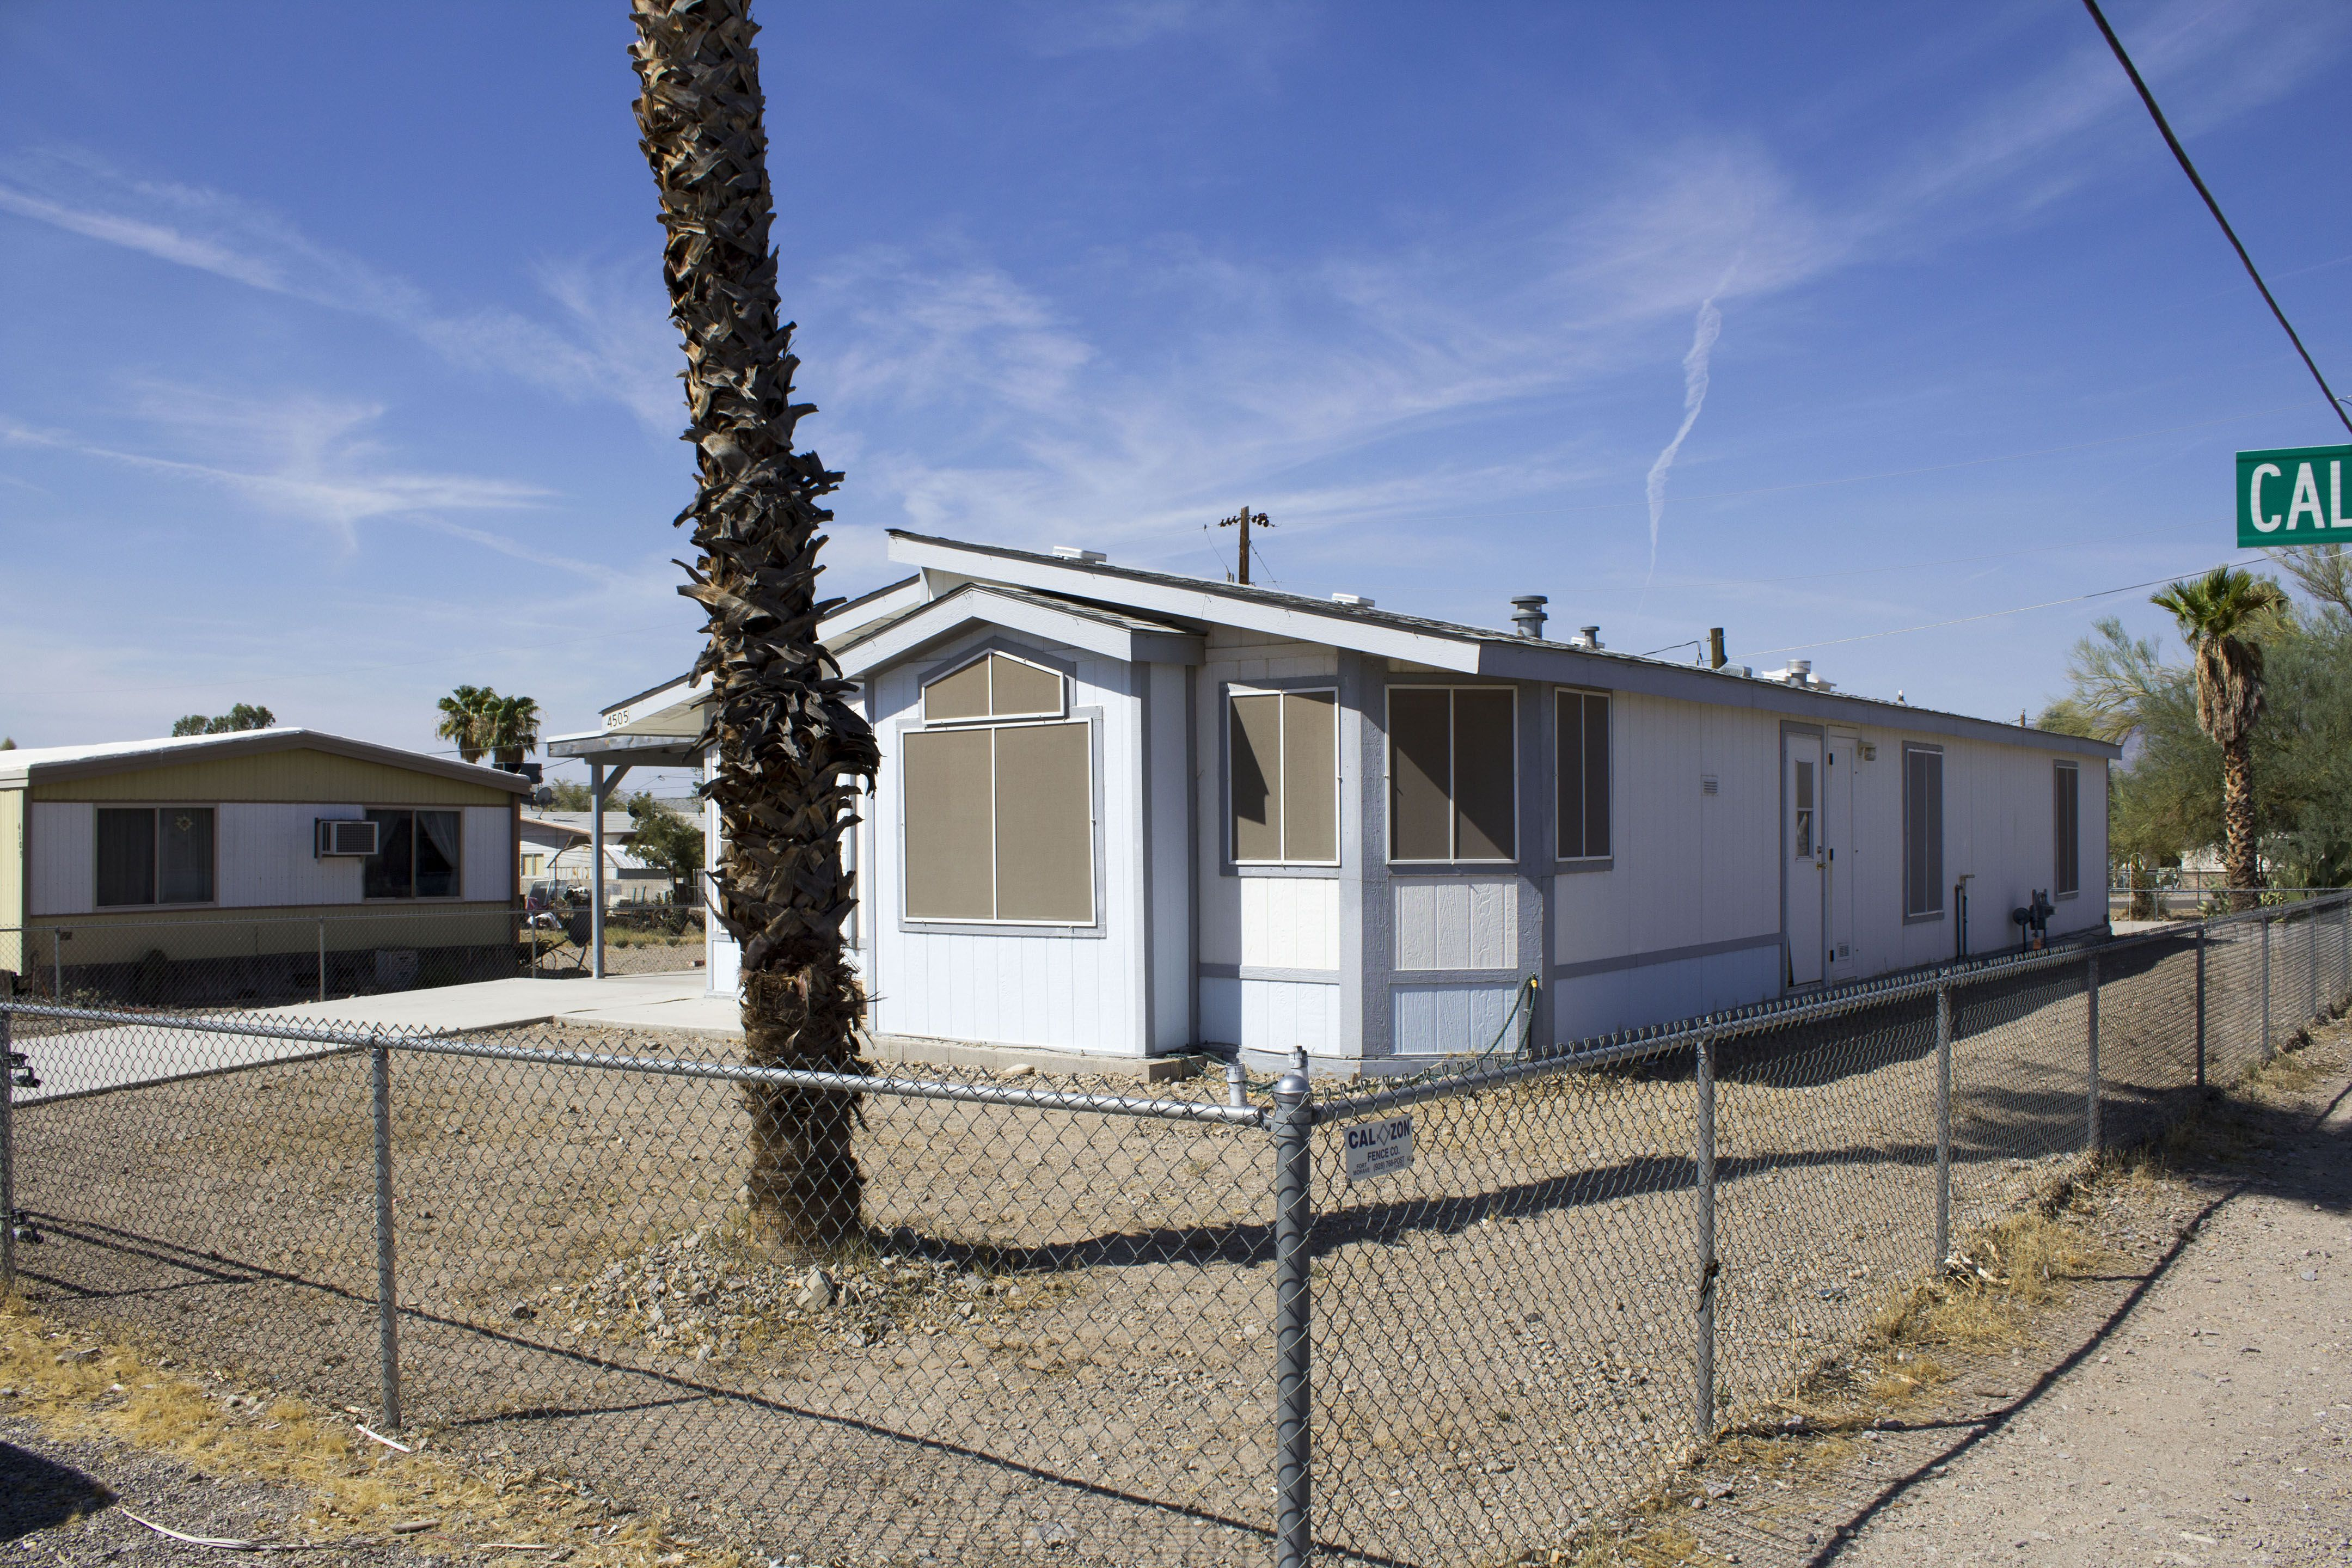 3 bedroom, 2 bath manufactured home on large corner lot in Fort Mohave, Arizona with easy access to Hwy 95, close to shopping, the Colorado River and the Avi Resort and Casino in Laughlin, NV.  4505 Calle Esperanza, Fort Mohave, AZ 86426 $75,000